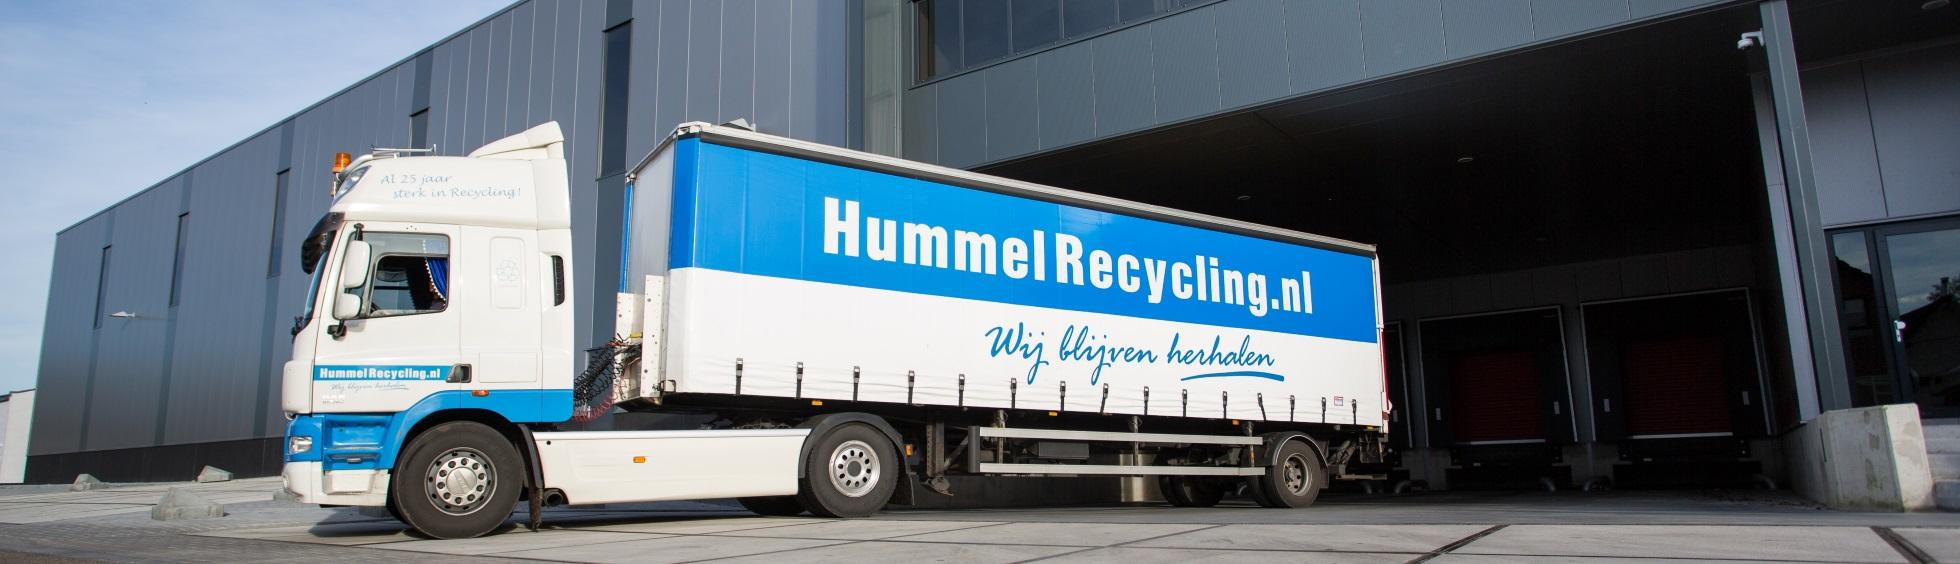 Hummel Recycling